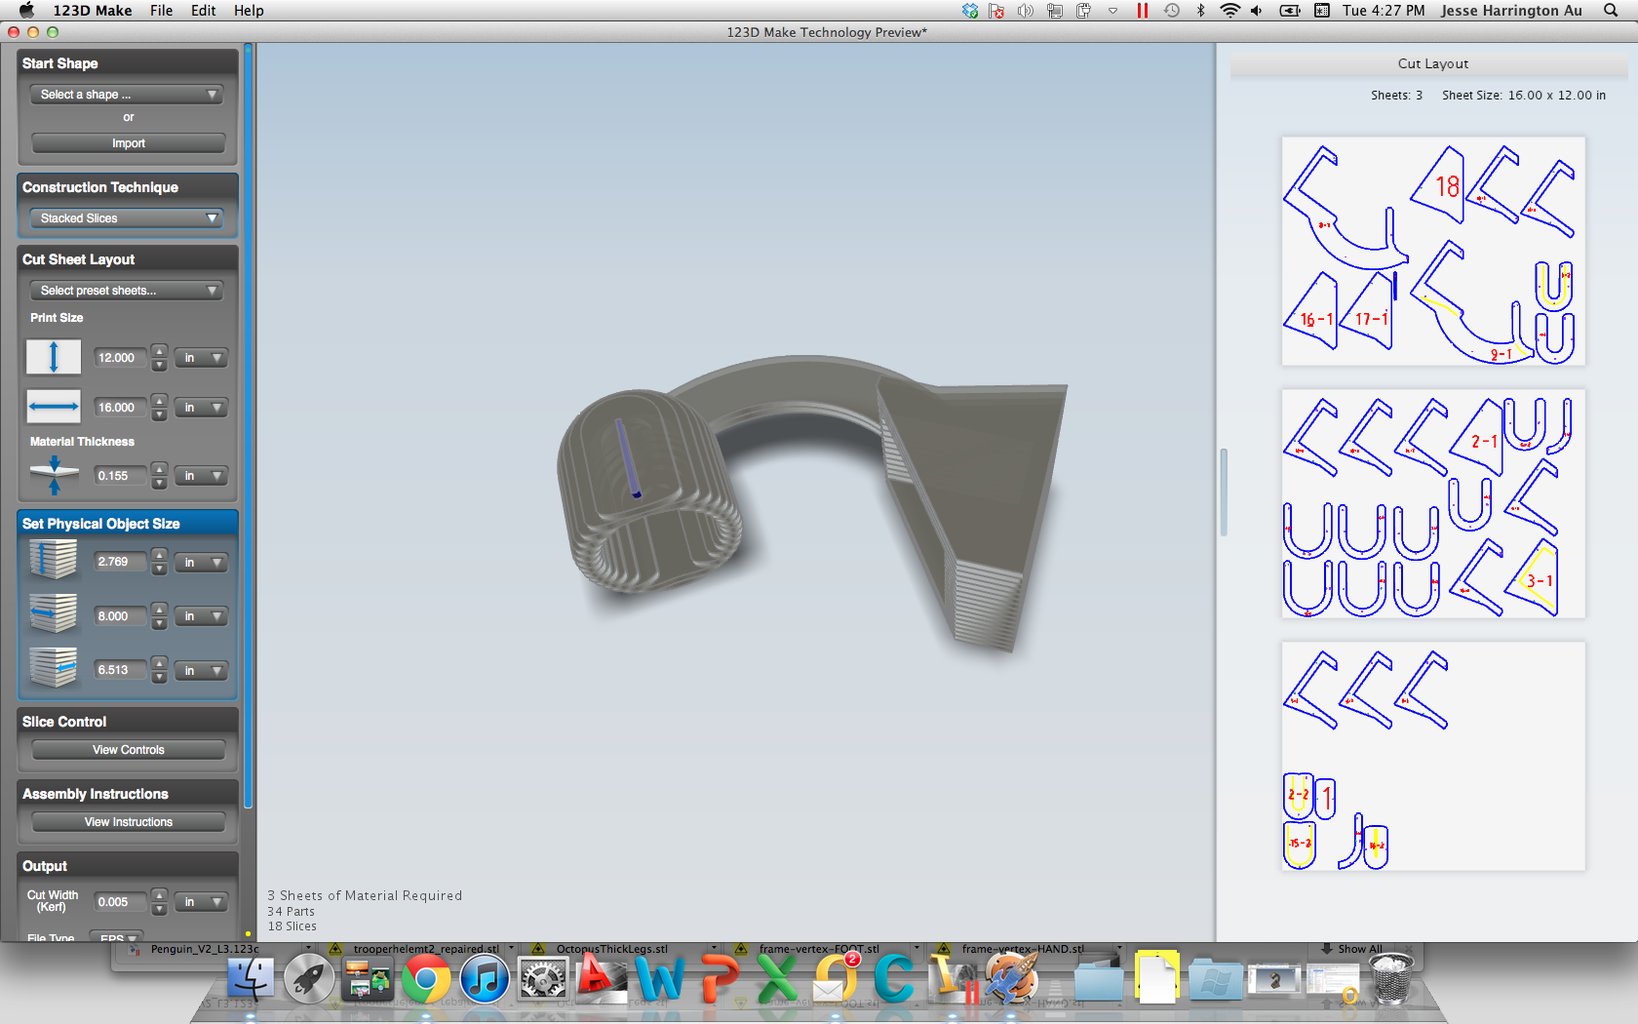 From Inventor to 123D Make